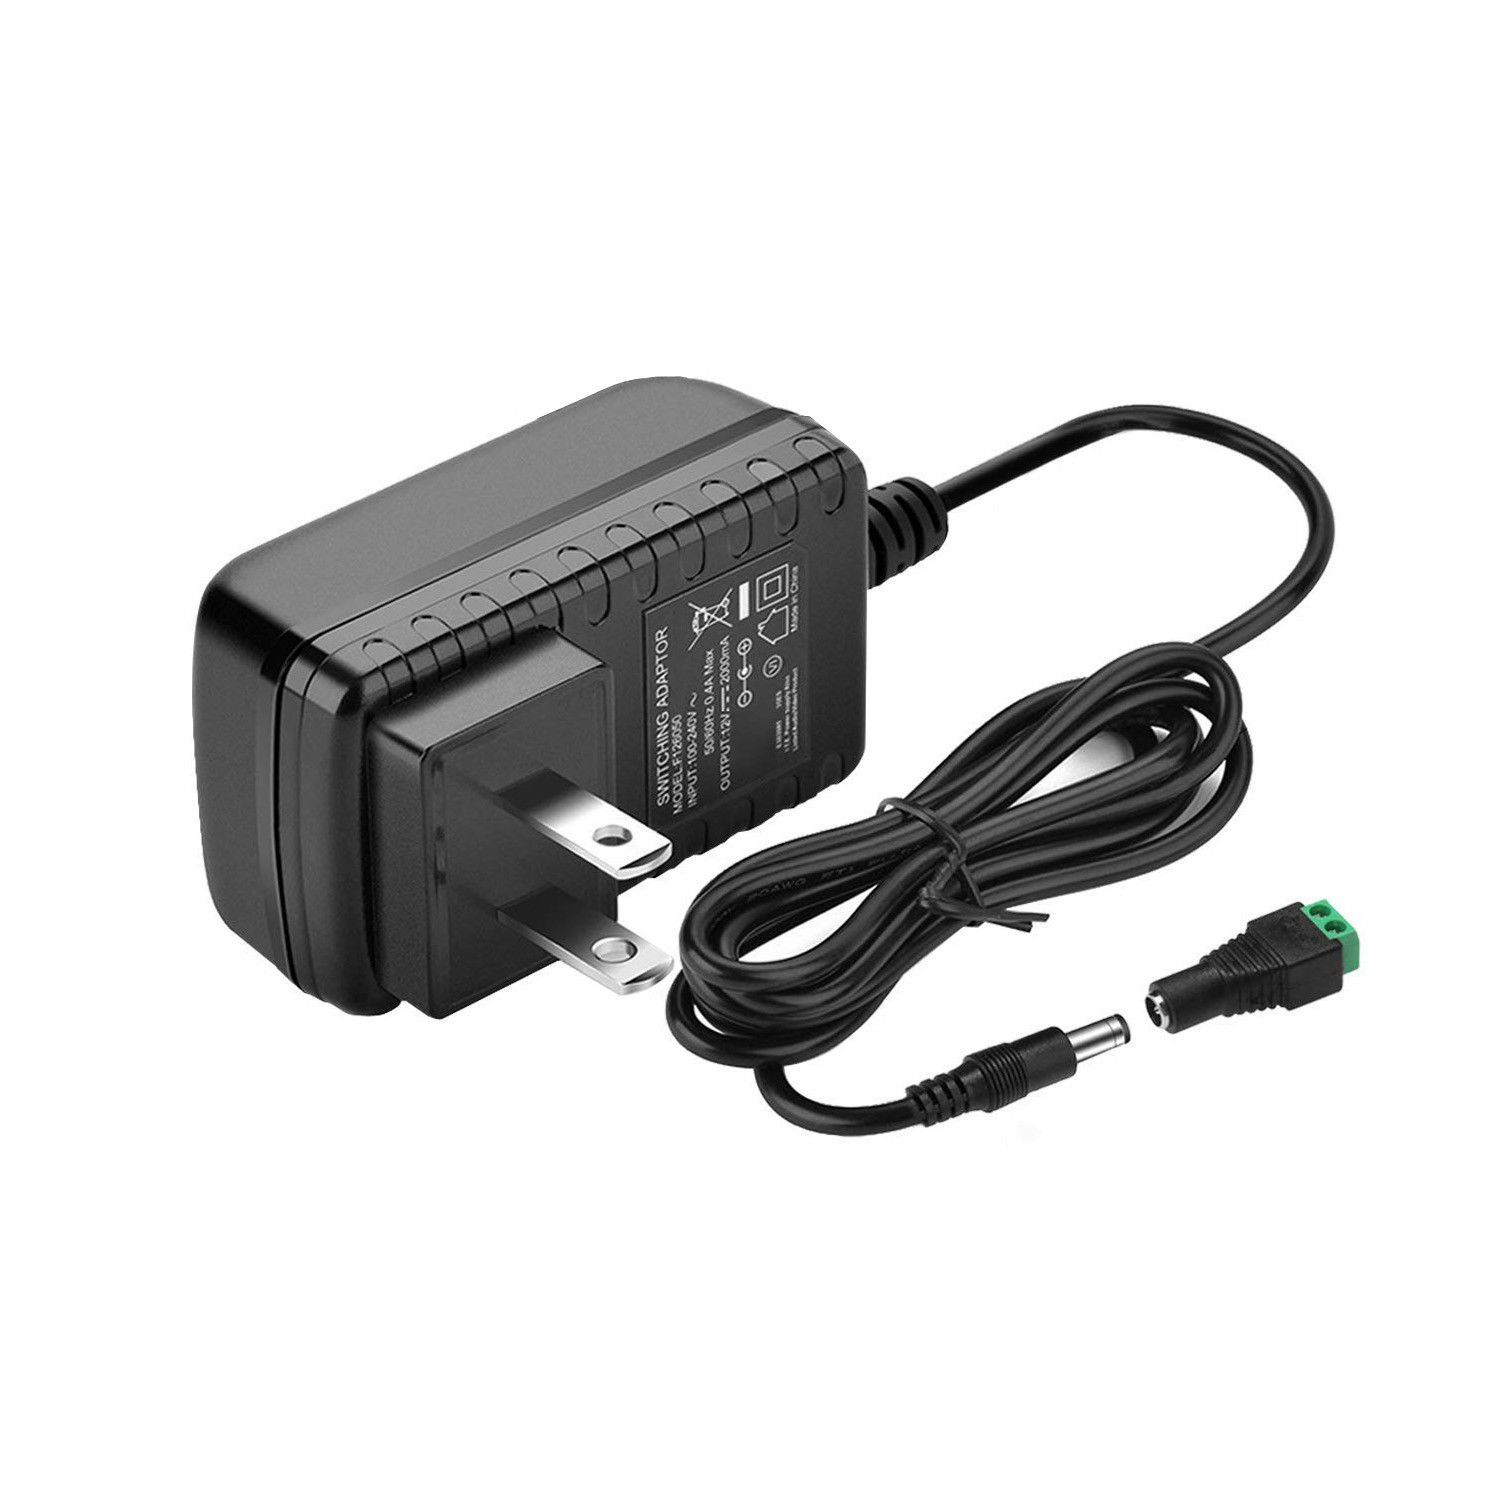 Solar Attic Fans Power Adapter Charger Transformers Power Supply Fo Power Adapter Adapter Transformers